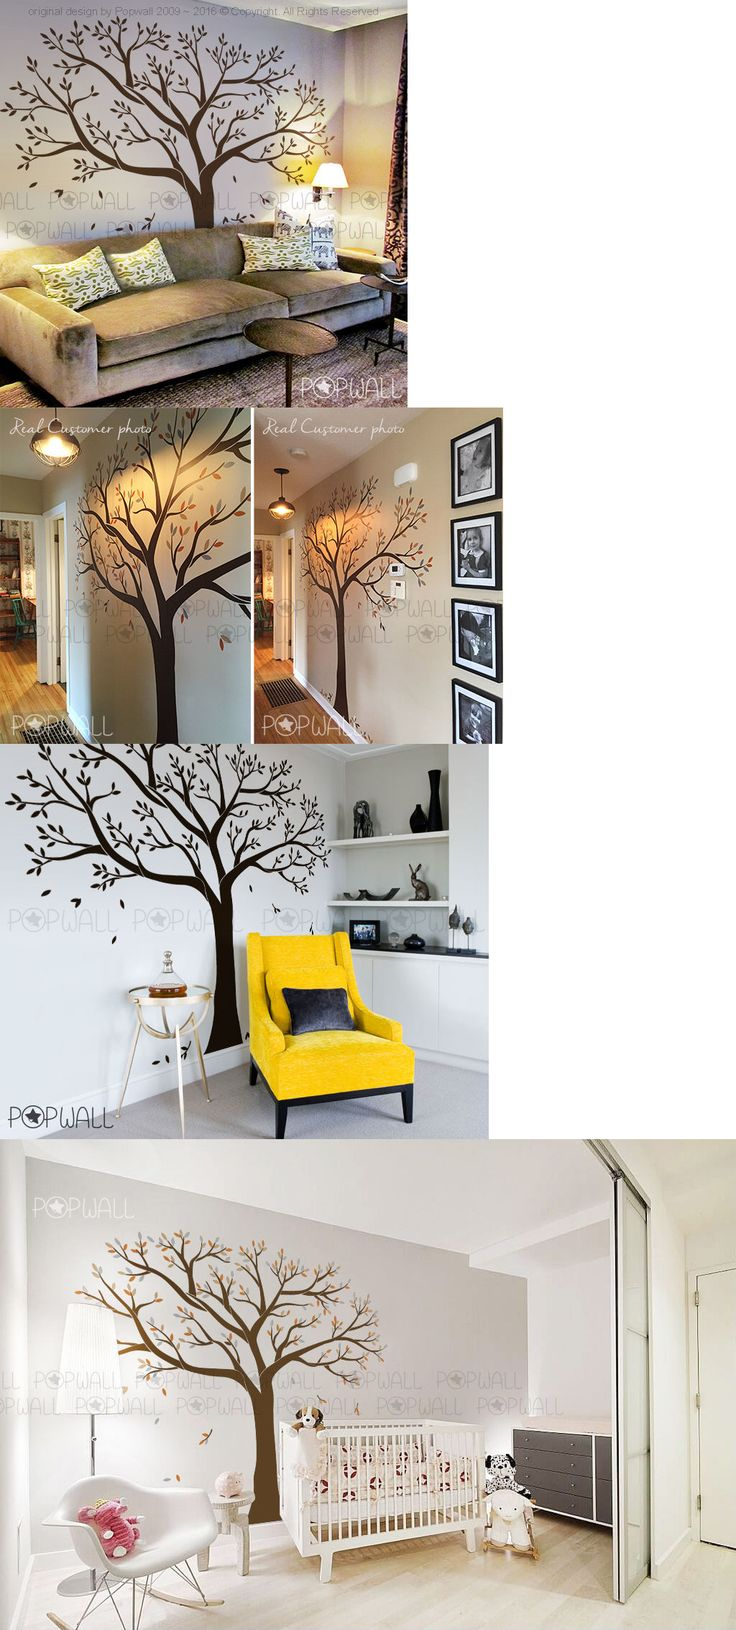 Picture frame family tree wall art tree decals trendy wall designs - Household Items Giant Family Tree Wall Sticker Vinyl Art Home Decals Room Decor Mural Branch